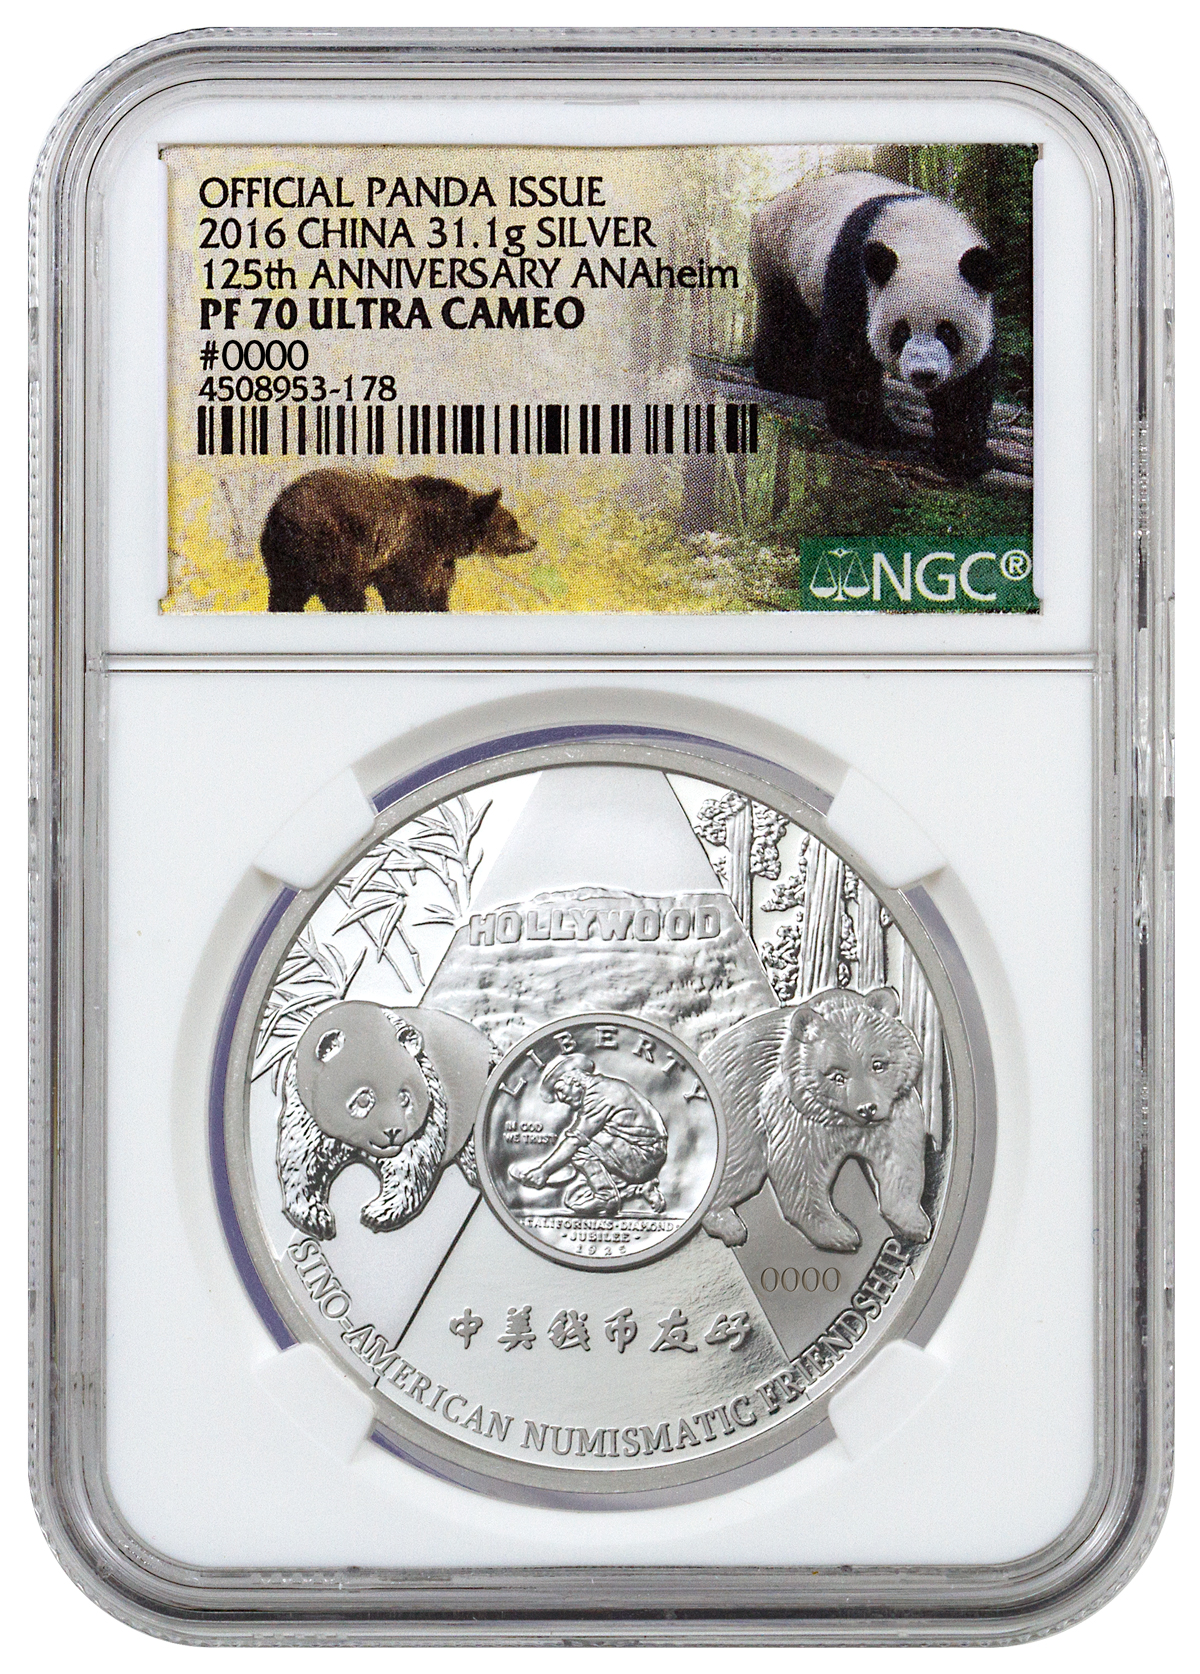 2016 China Anaheim ANA World's Fair of Money Silver Panda 1 oz Silver Proof Medal NGC PF70 UC (Exclusive ANA Panda Label)